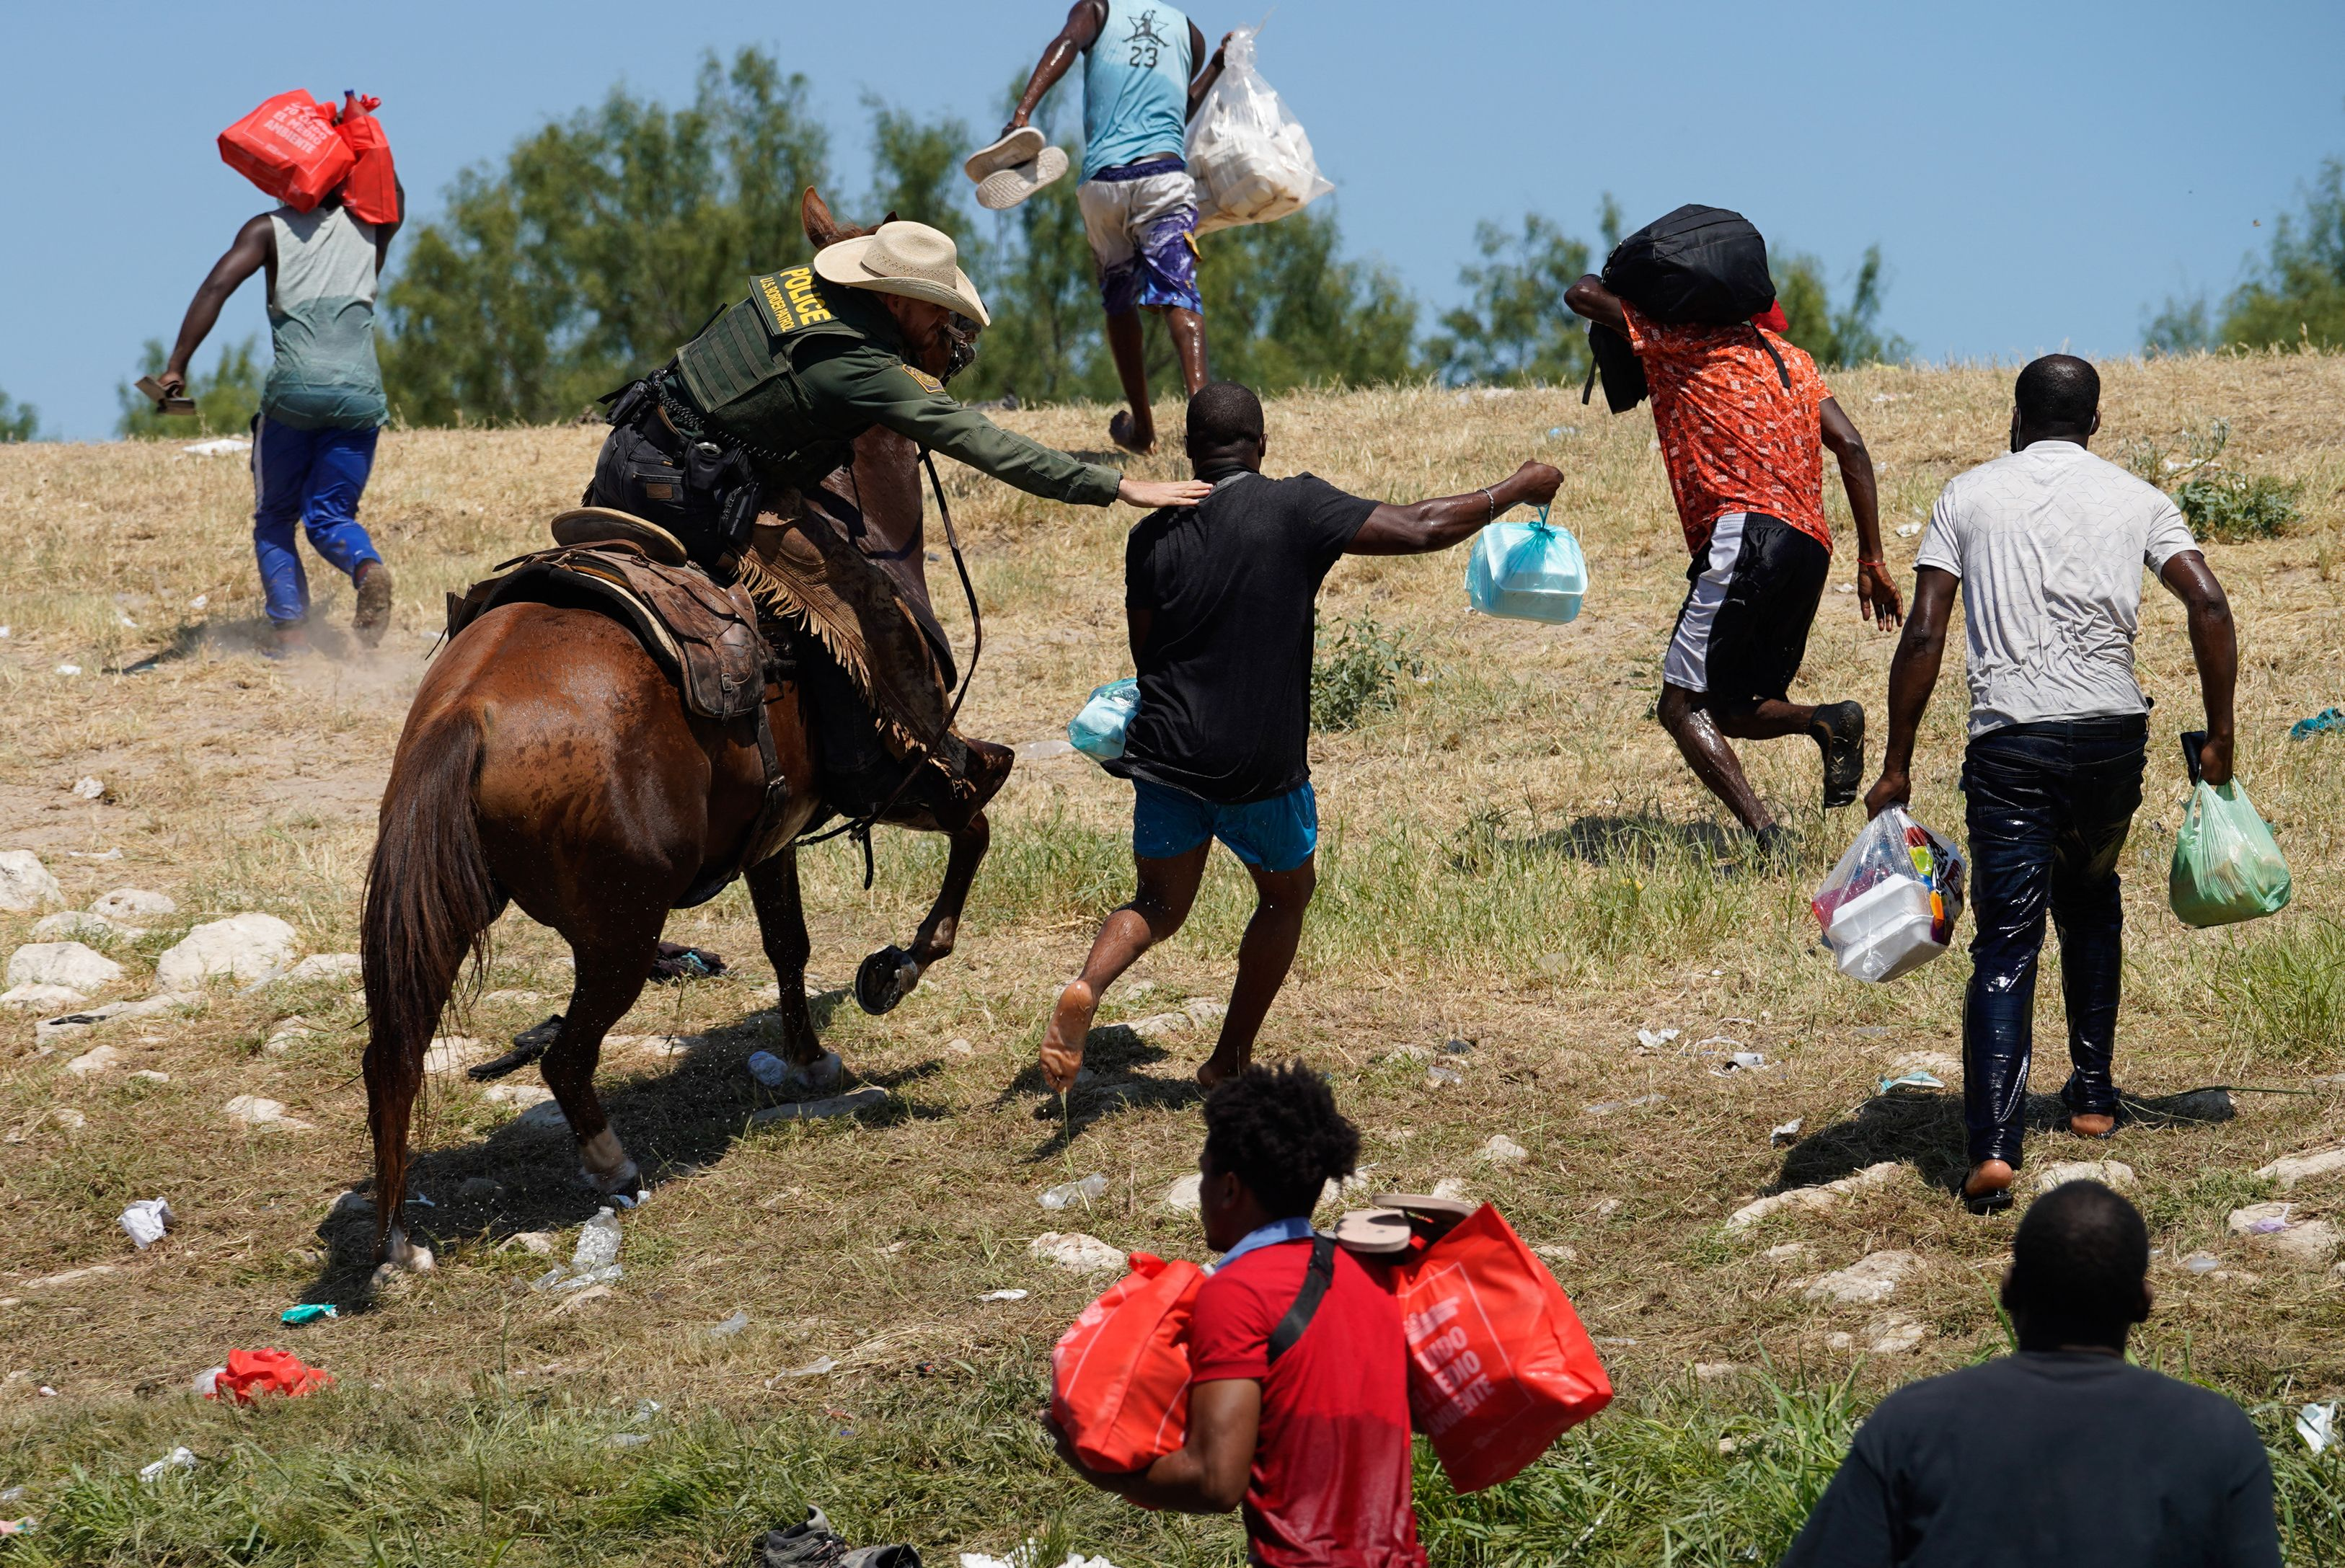 A U.S. Border Patrol agent on horseback tries to stop a Haitian migrant from entering an encampment on the banks of the Rio Grande River Sept. 19 near the Acuna Del Rio International Bridge in Del Rio, Texas.